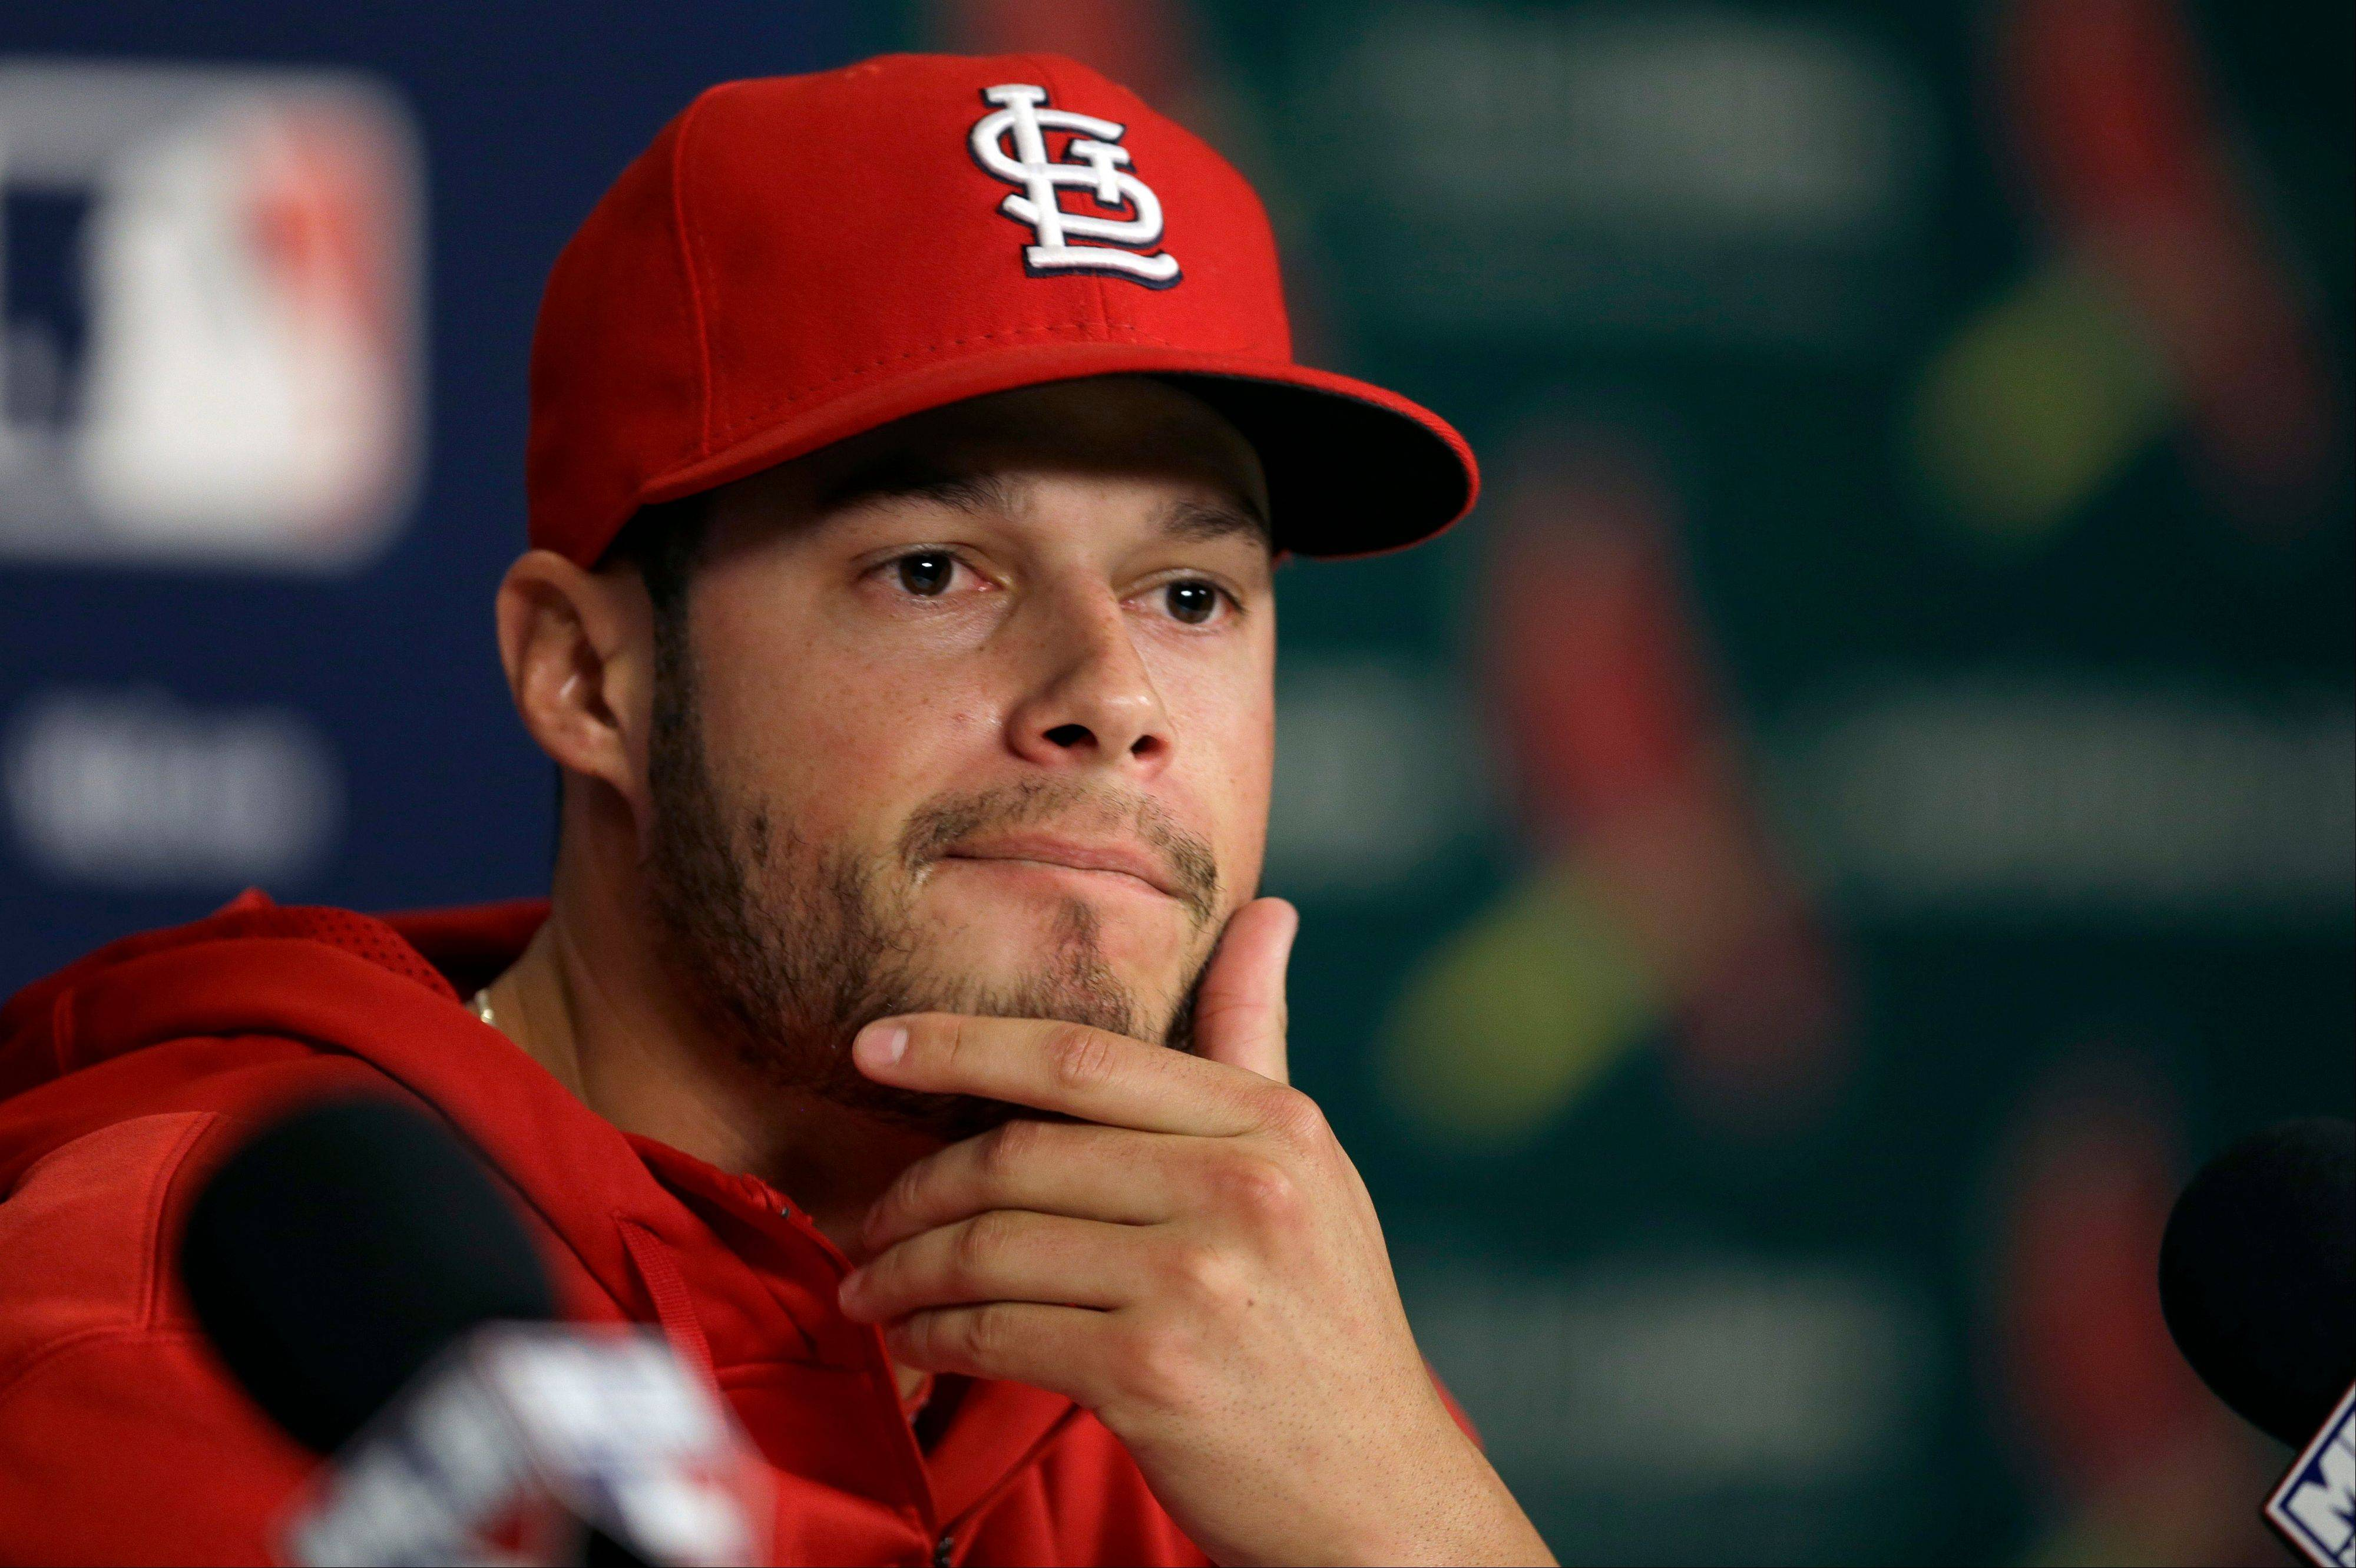 Cardinals pitcher Joe Kelly will take the mound for St. Louis on Friday.